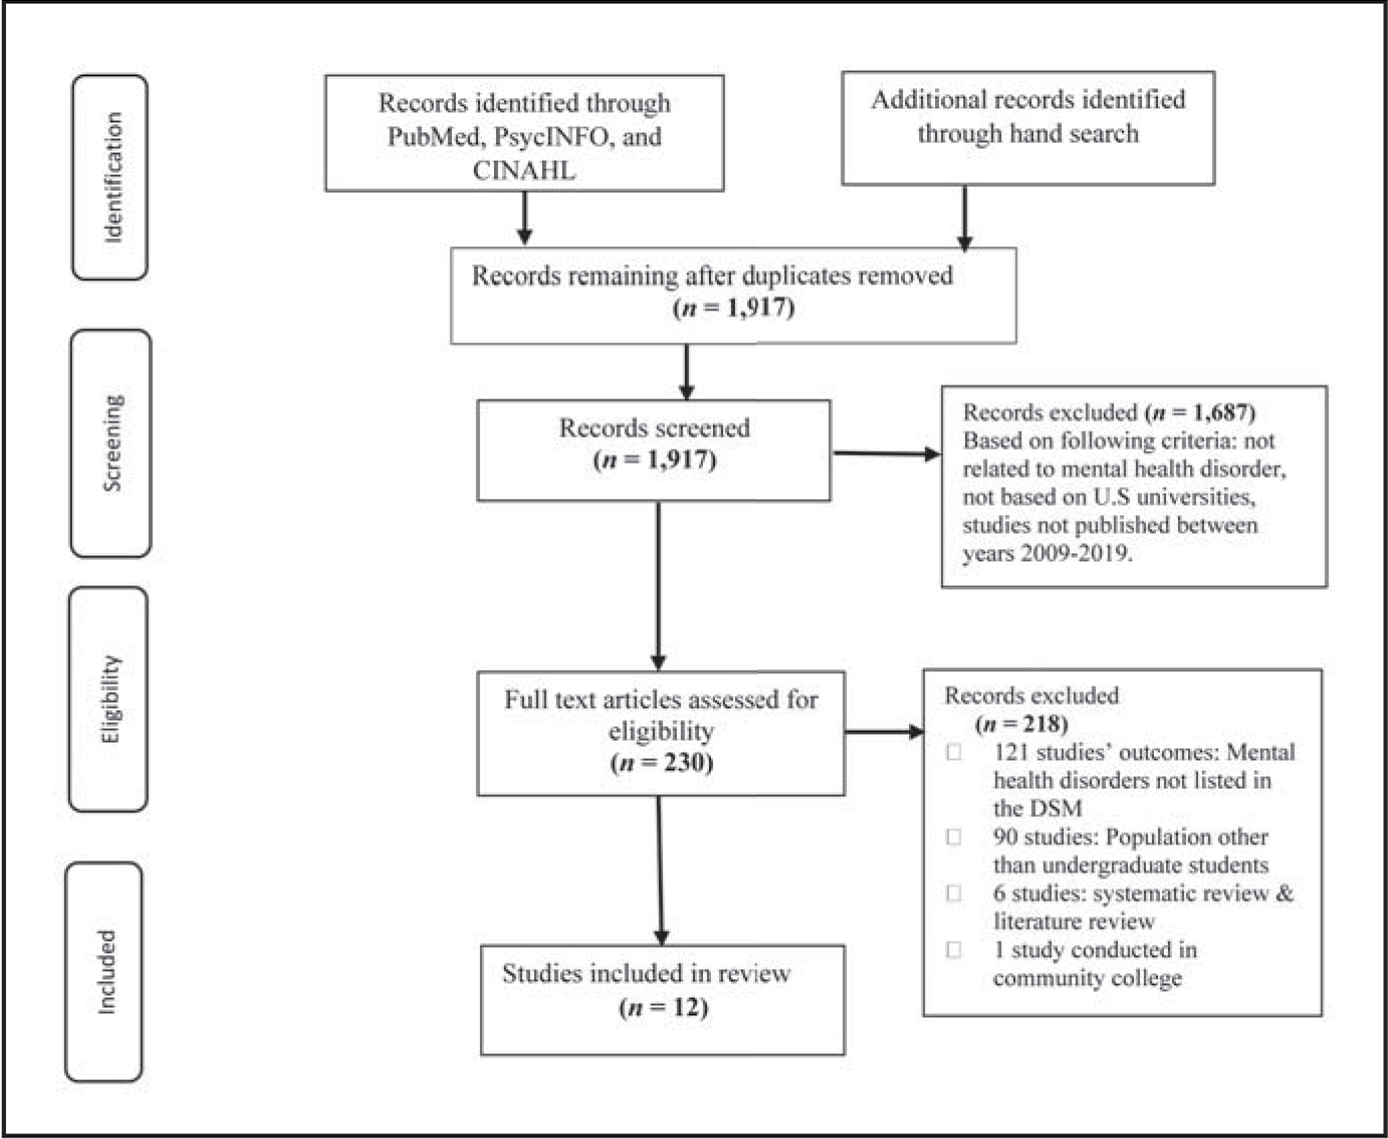 Search strategy using Preferred Reporting Items for Systematic Reviews and Meta-Analyses (Moher et al., 2009).Note. DSM = Diagnostic and Statistical Manual of Mental Disorders.